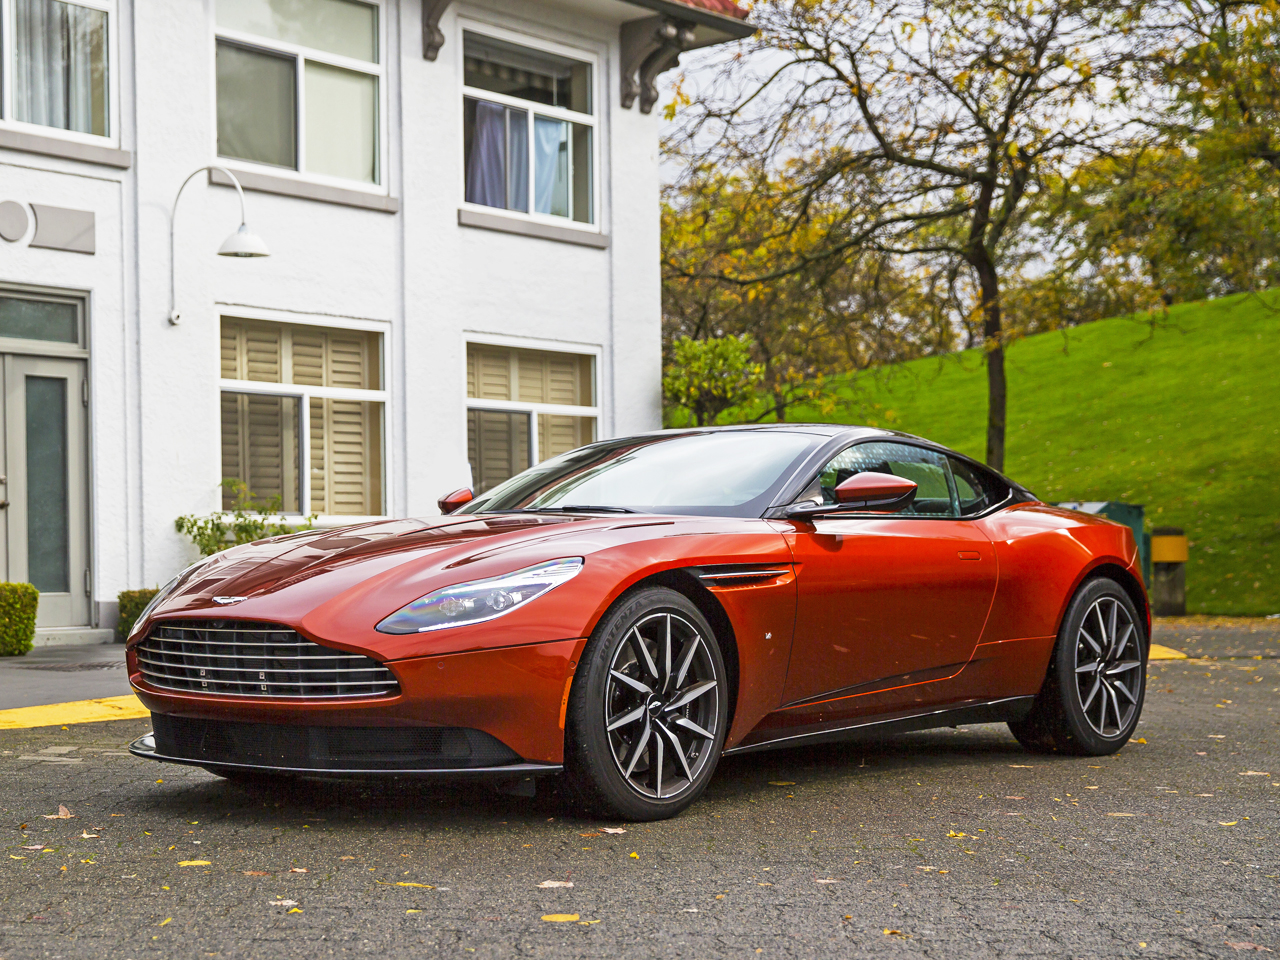 2017 Aston Martin DB11 Launch Edition Road Test Review